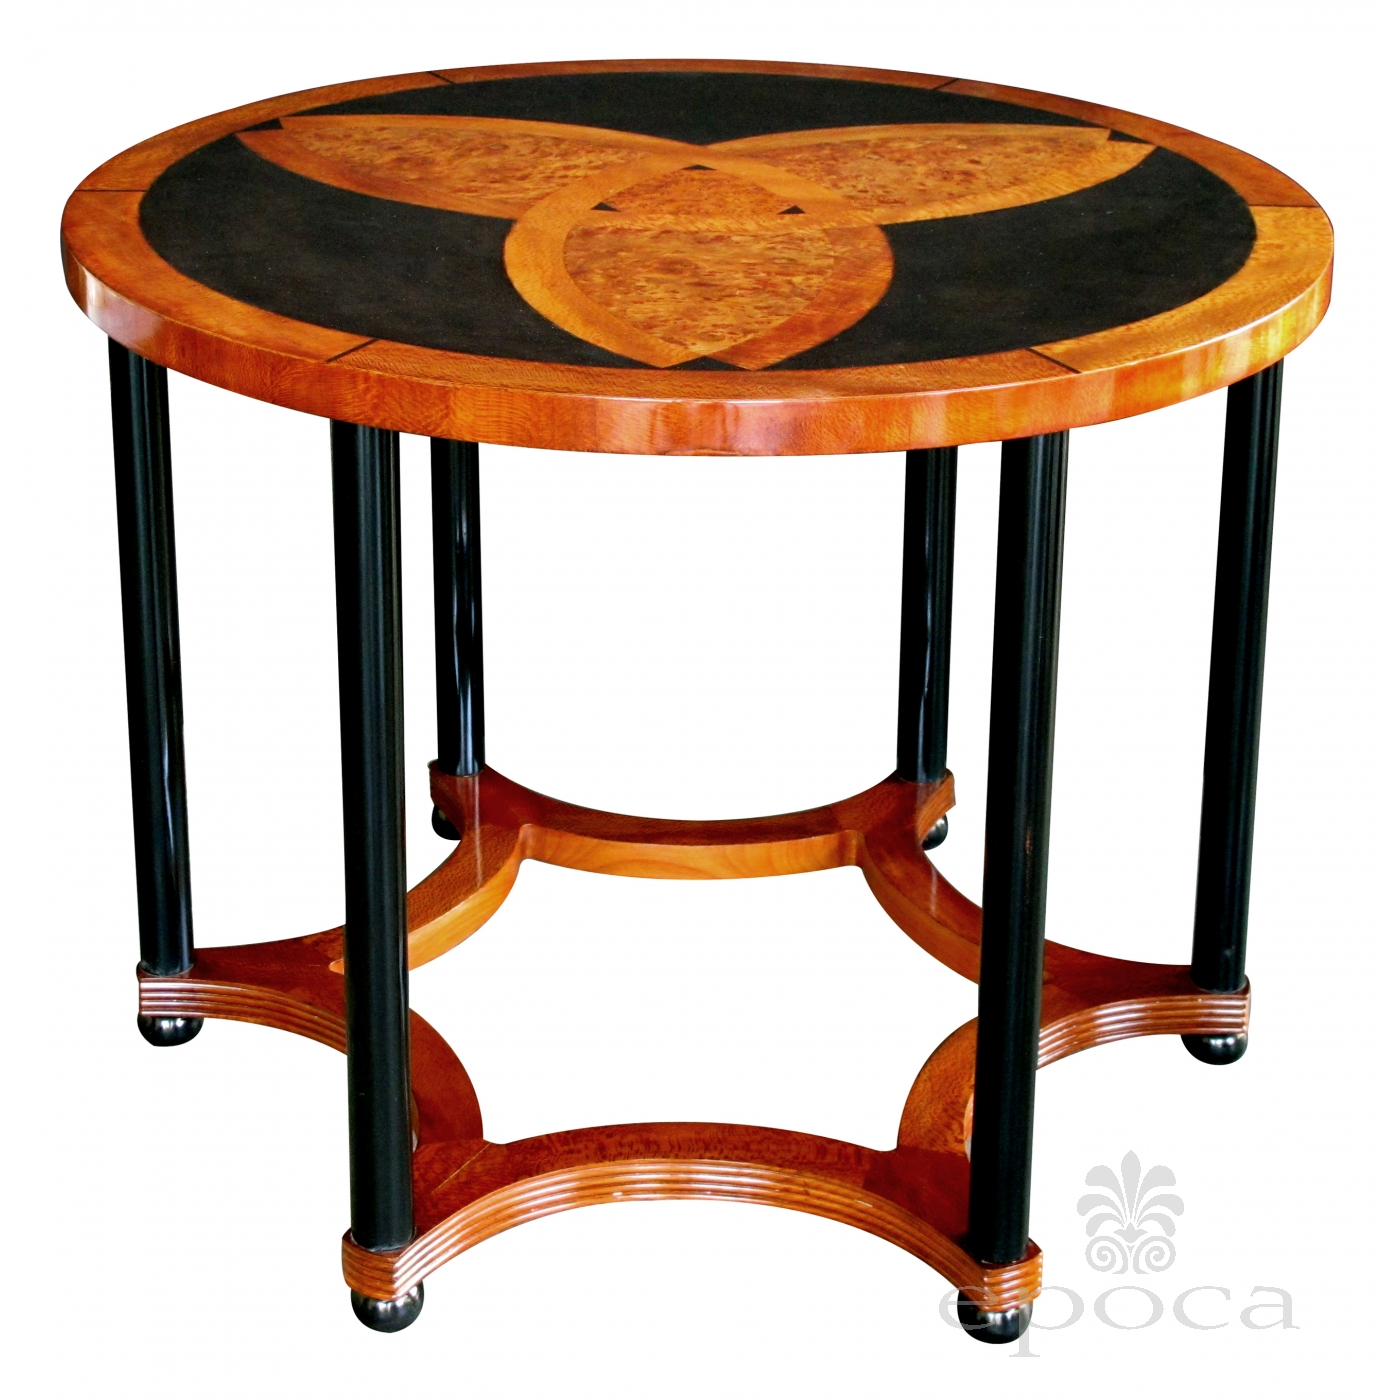 a sophisticated austrian art deco amboyna inlaid circular table